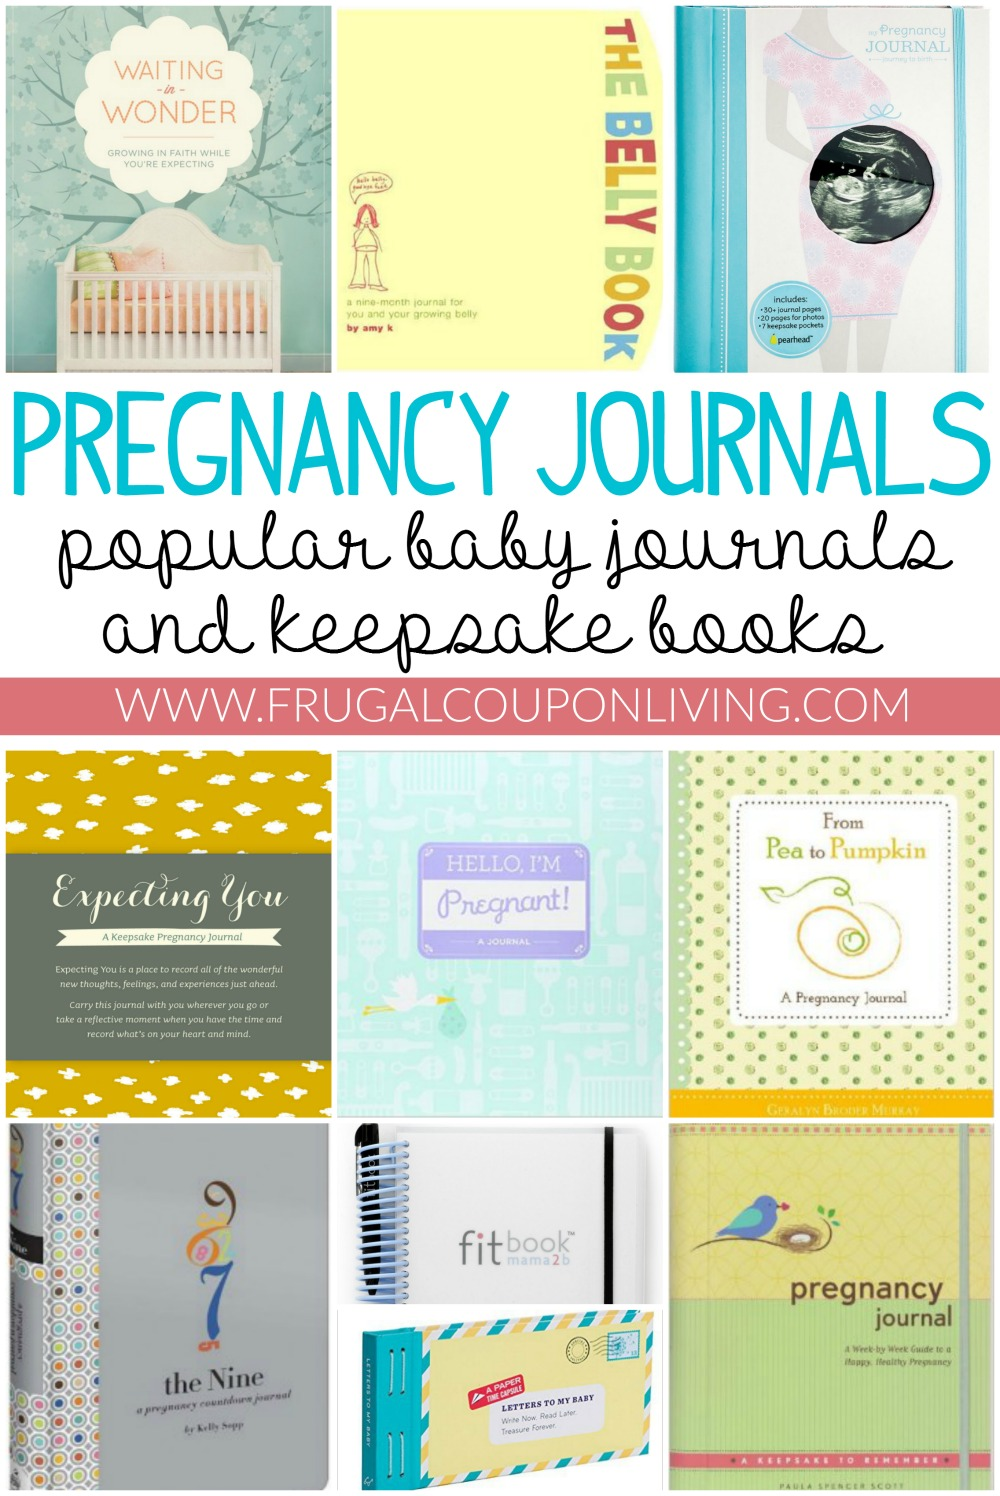 pregnancy-journals-collage-frugal-coupon-living